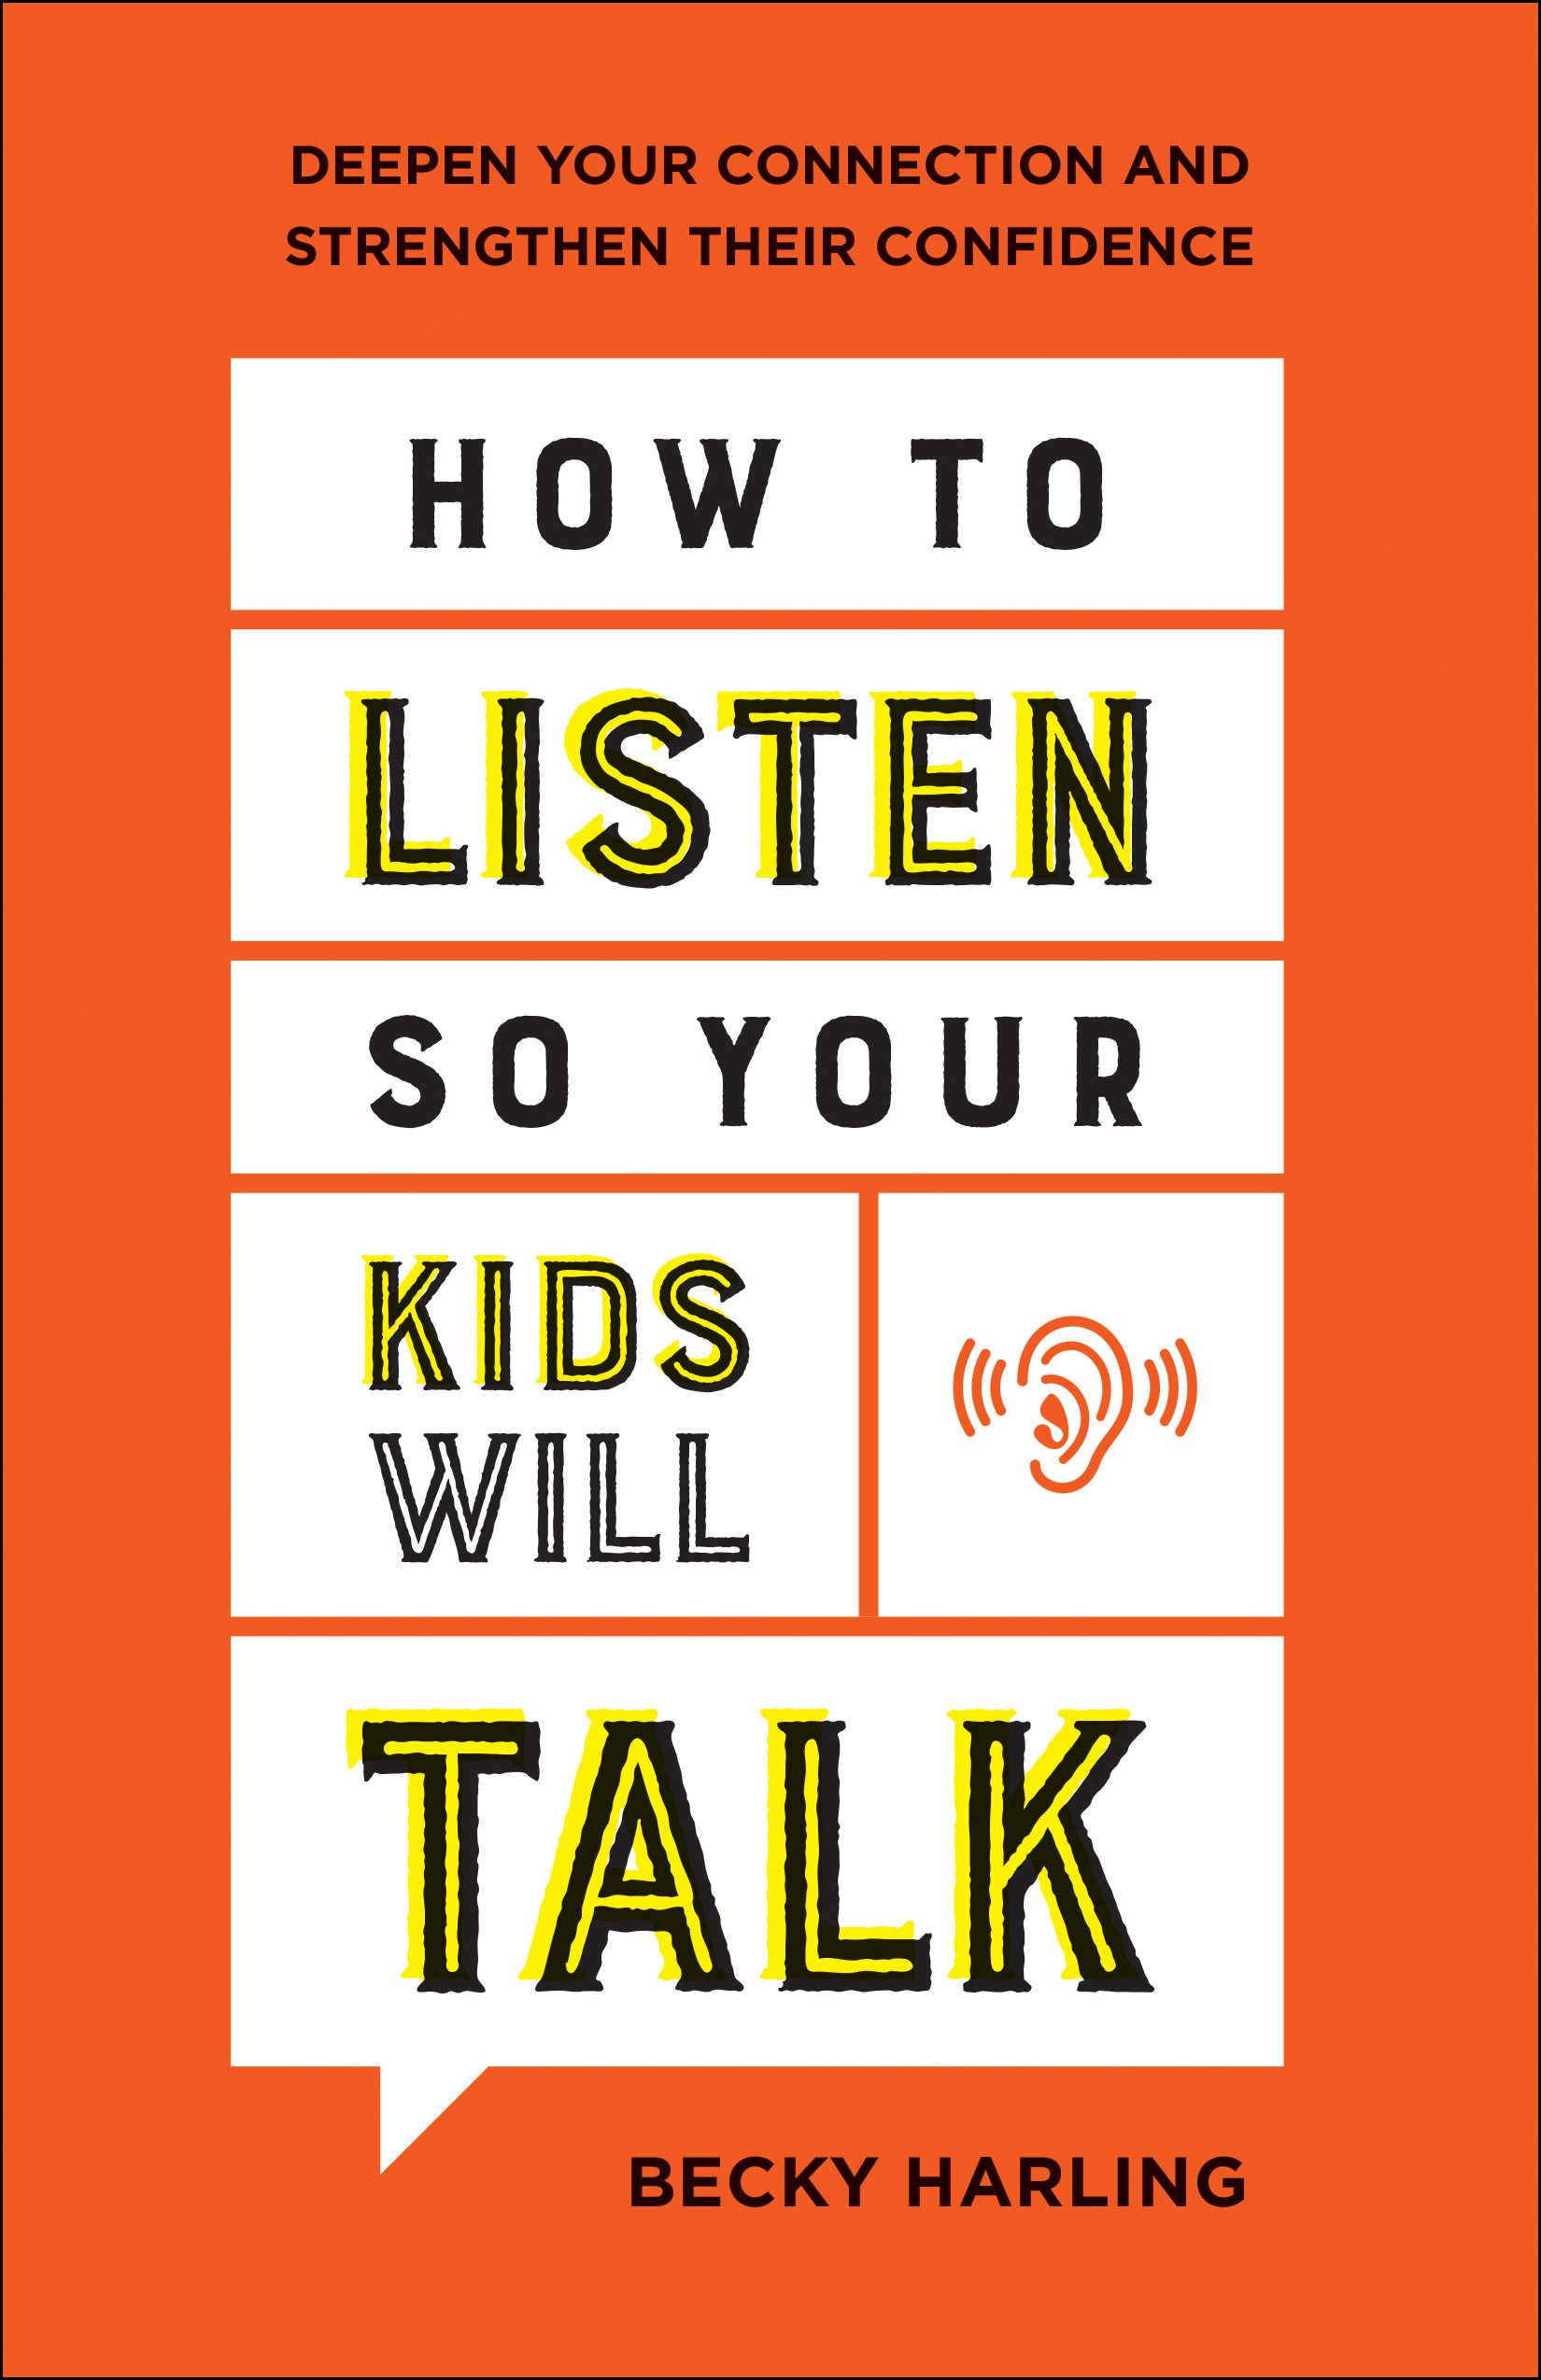 Cover of Becky Harling's book, How to Listen so Your Kids Will Talk